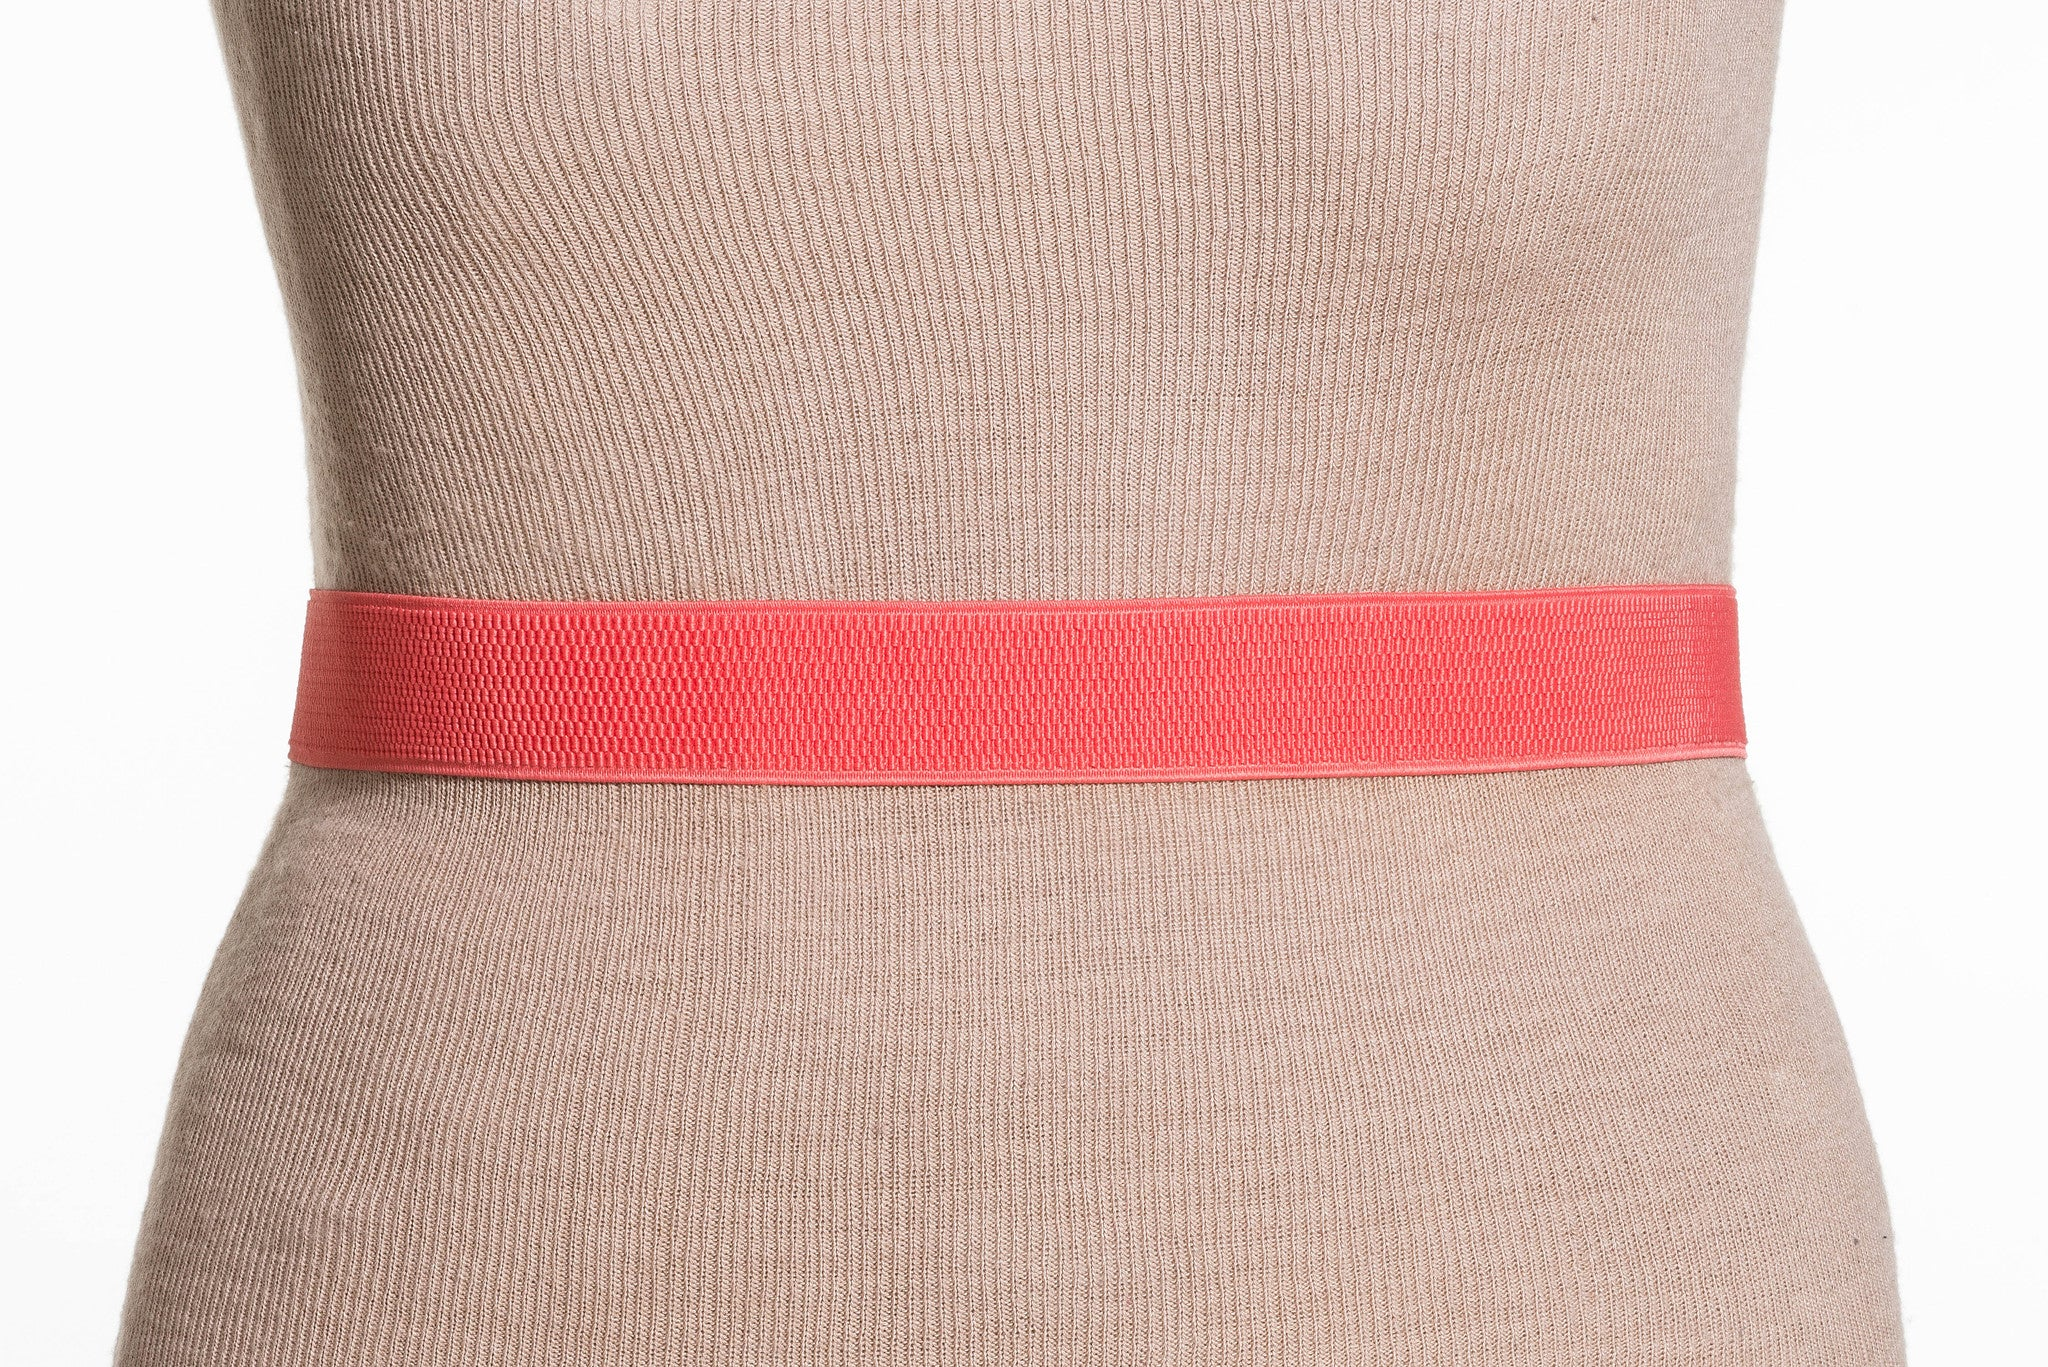 Final Sale Plus Size Elastic Band / Gold Two Ring Lock Belt in Coral